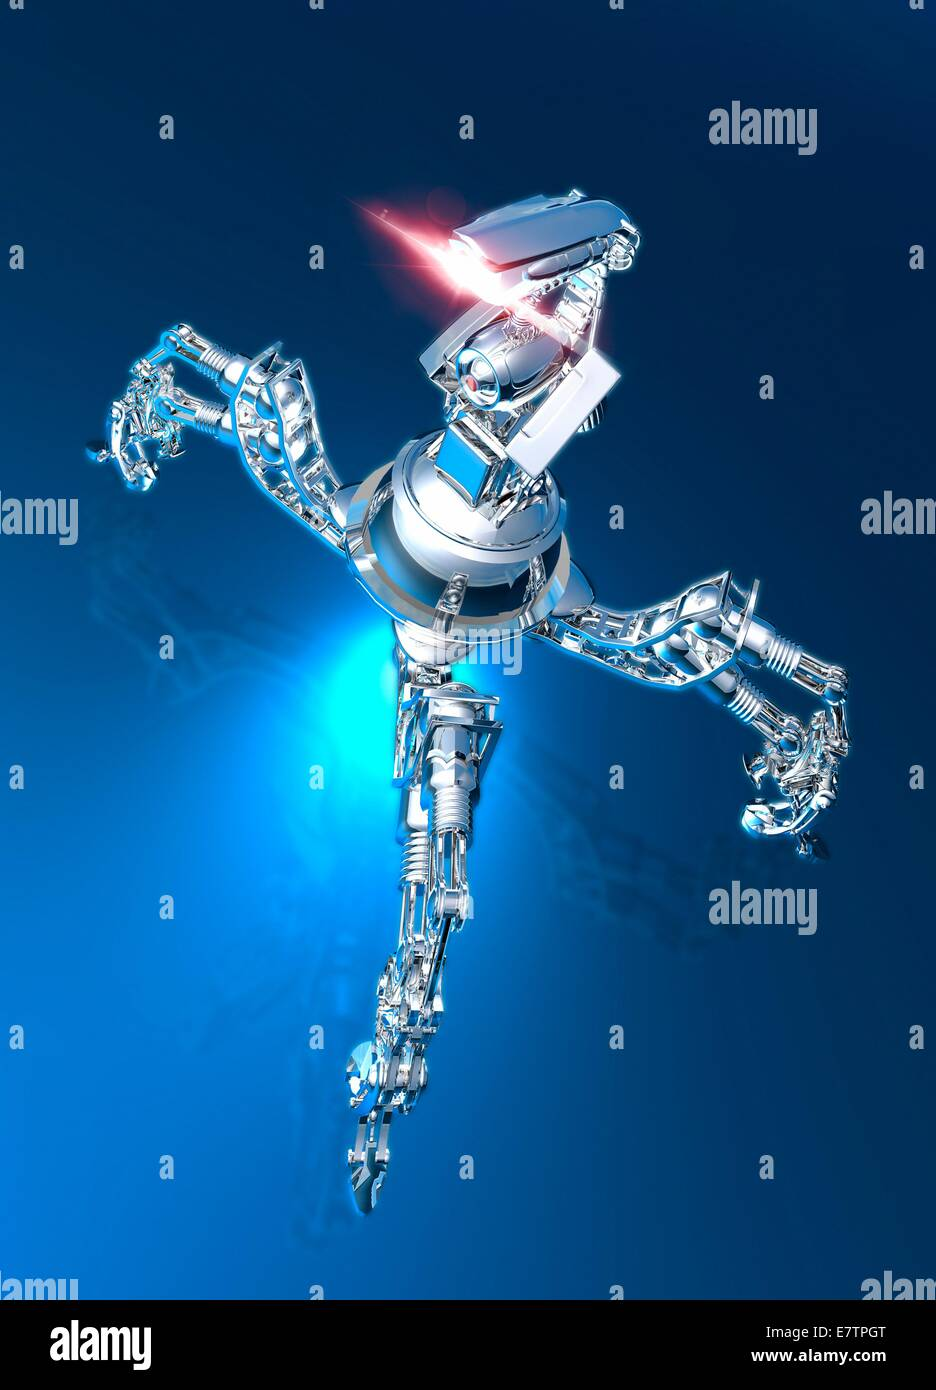 Nano Robot Stock Photos & Nano Robot Stock Images - Alamy